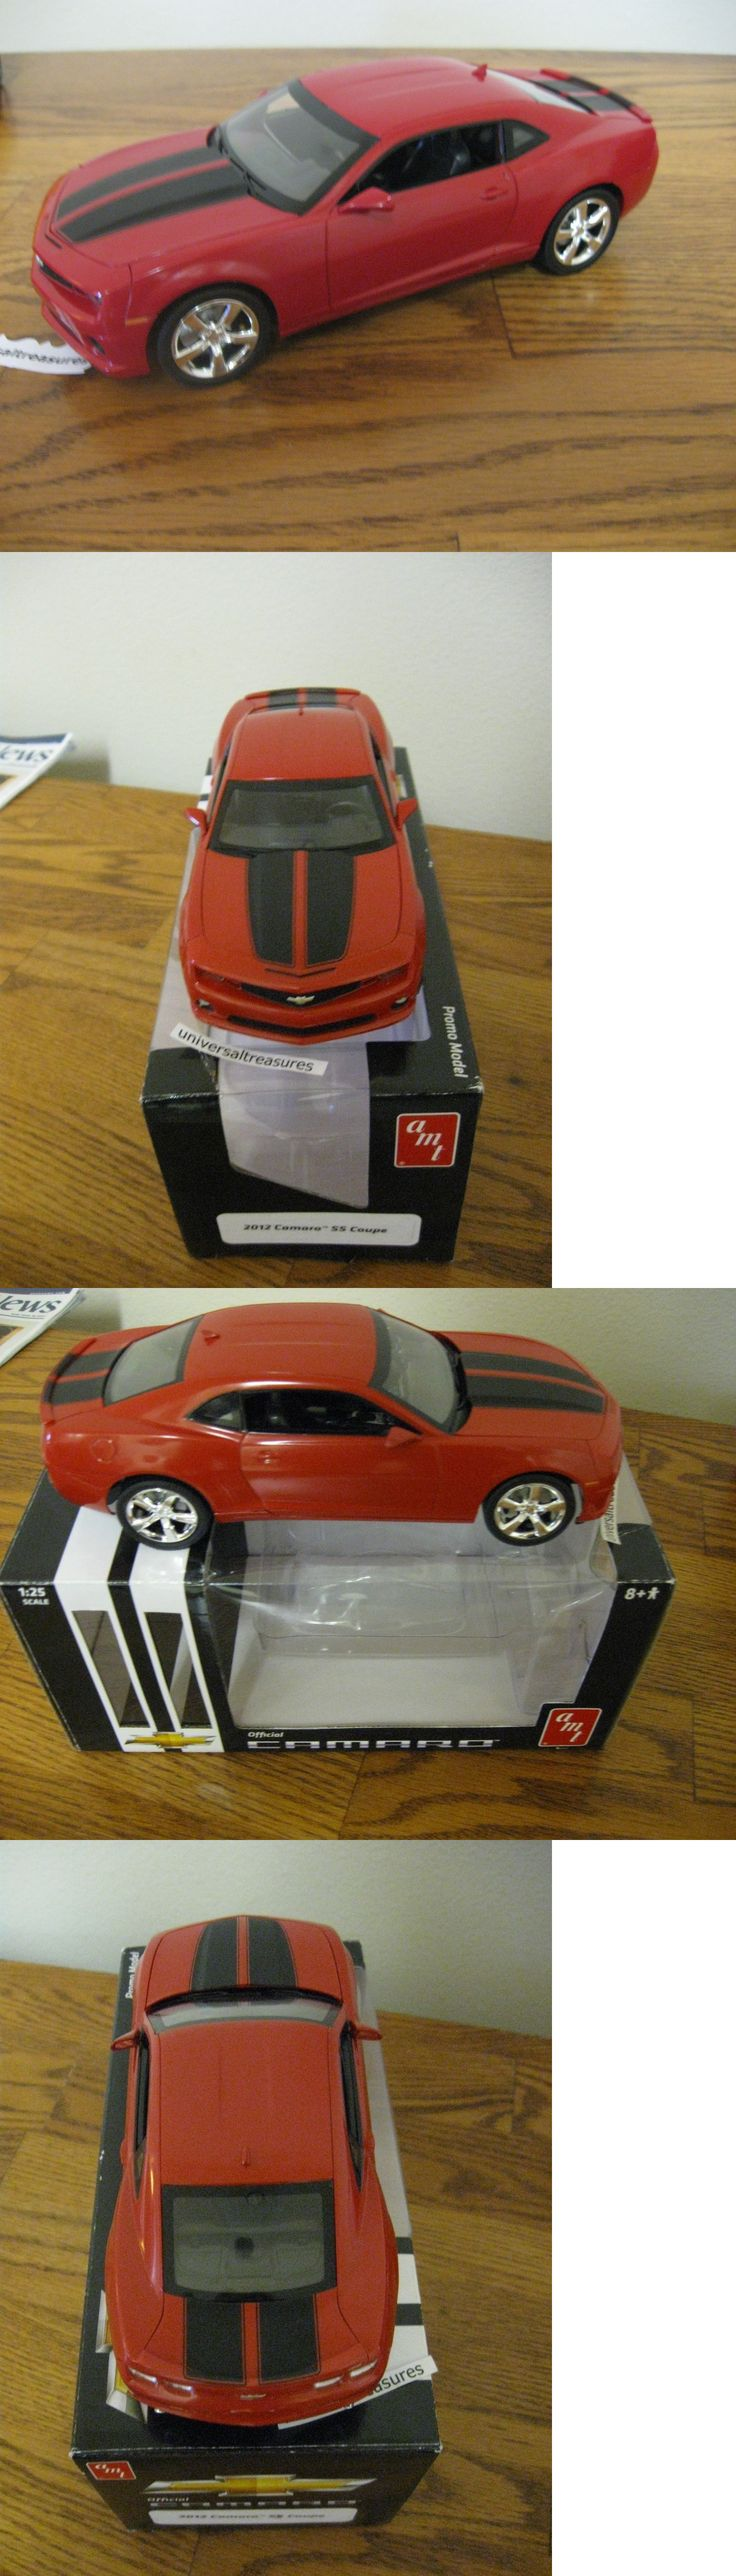 Promo 2592 official 2012 chevy camaro ss orange coupe 1 25th scale promo model